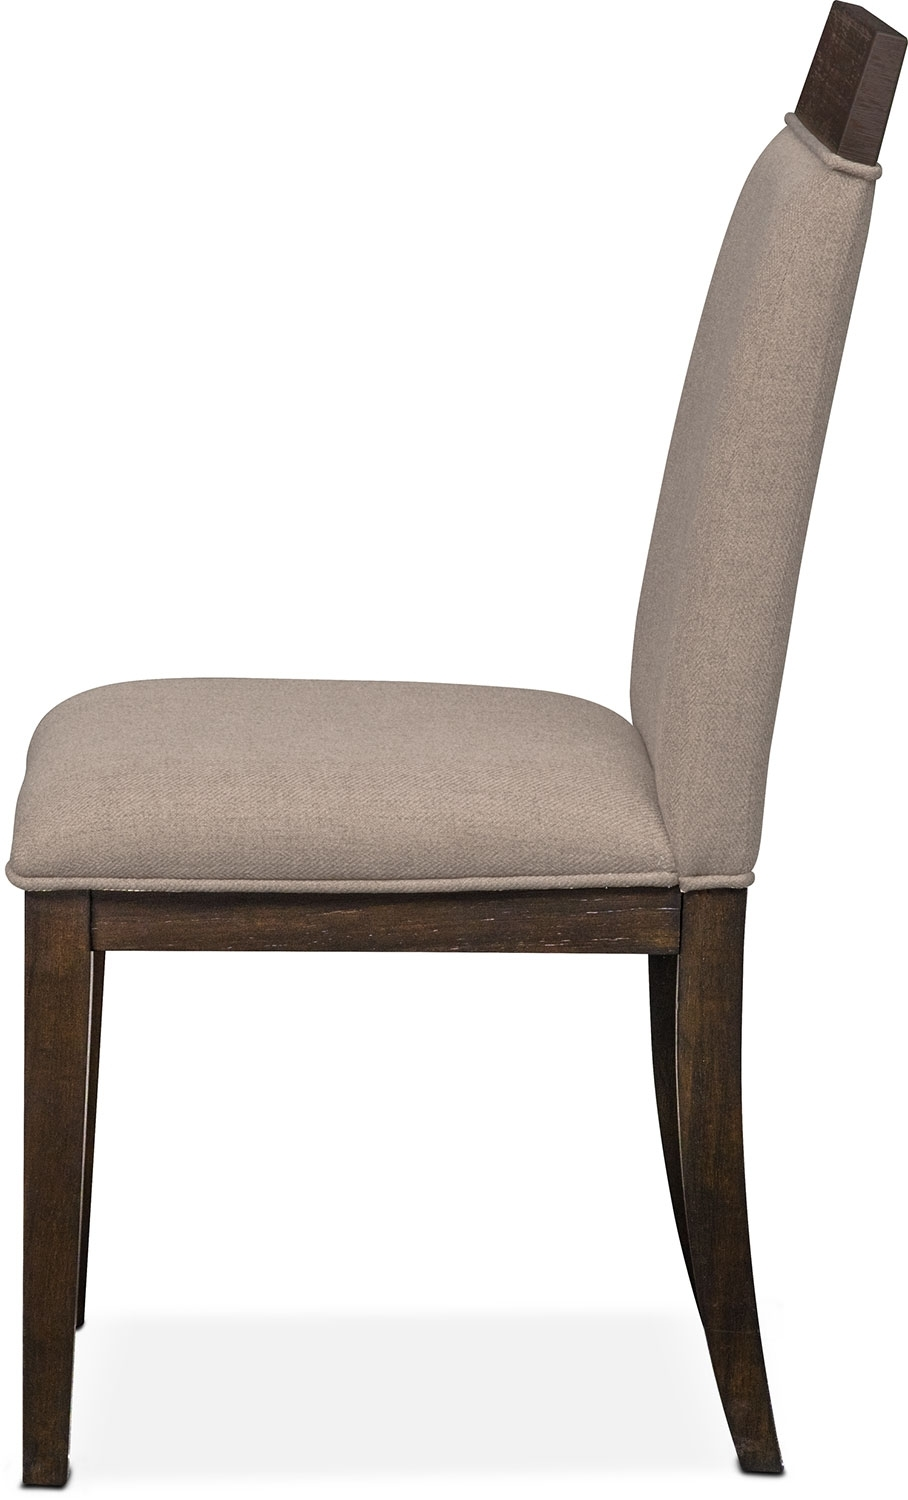 Gavin Side Chair – Brownstone | Value City Furniture And Mattresses In Newest Gavin 7 Piece Dining Sets With Clint Side Chairs (Photo 18 of 20)